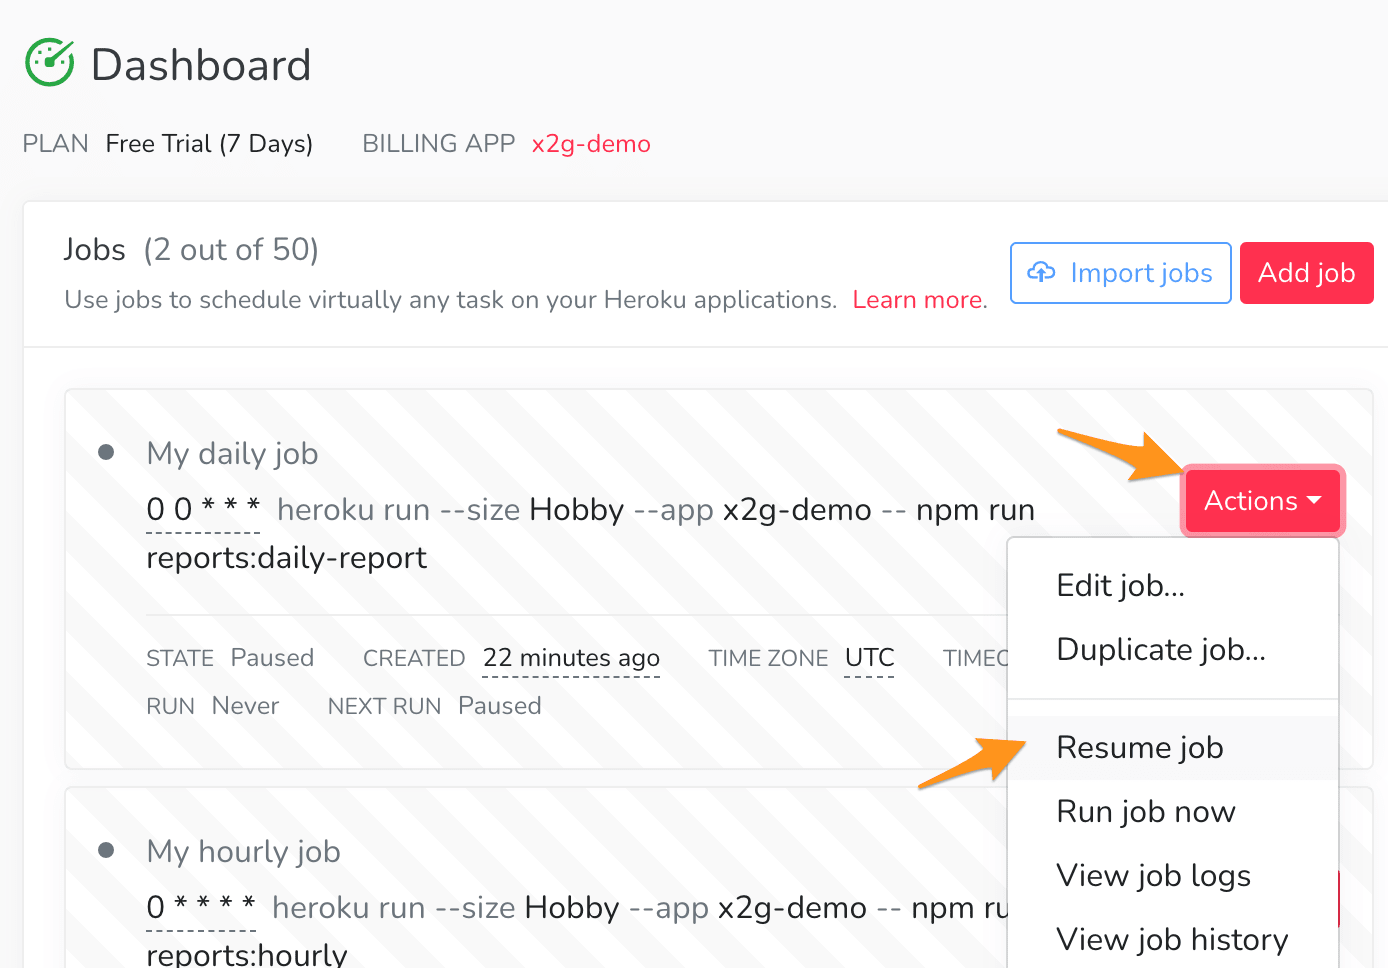 to enable a job, click Actions and Resume job